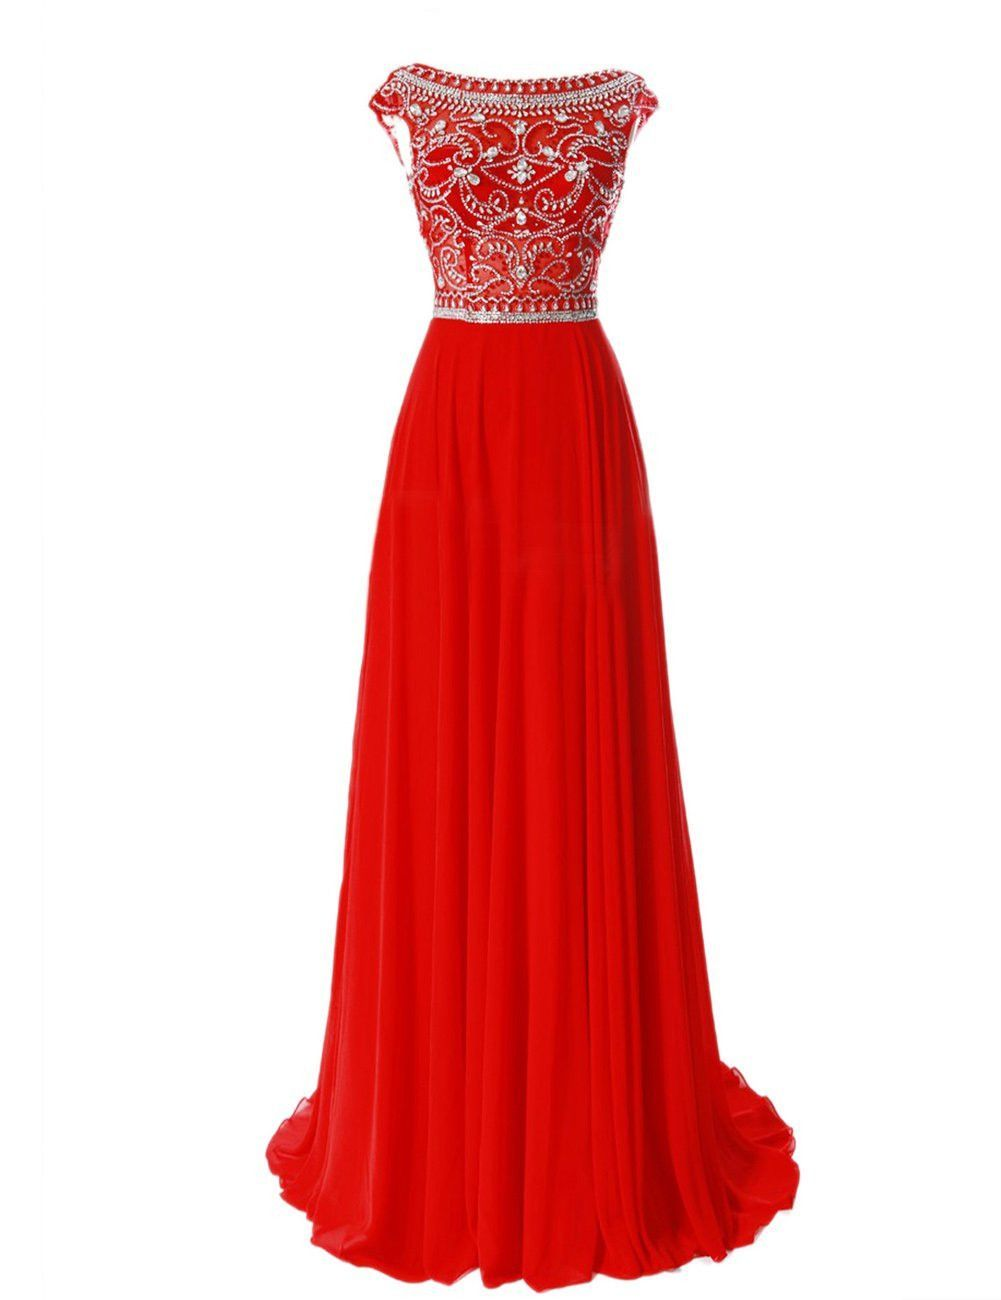 Red long chiffon silver beaded chiffon gown with cap sleeves